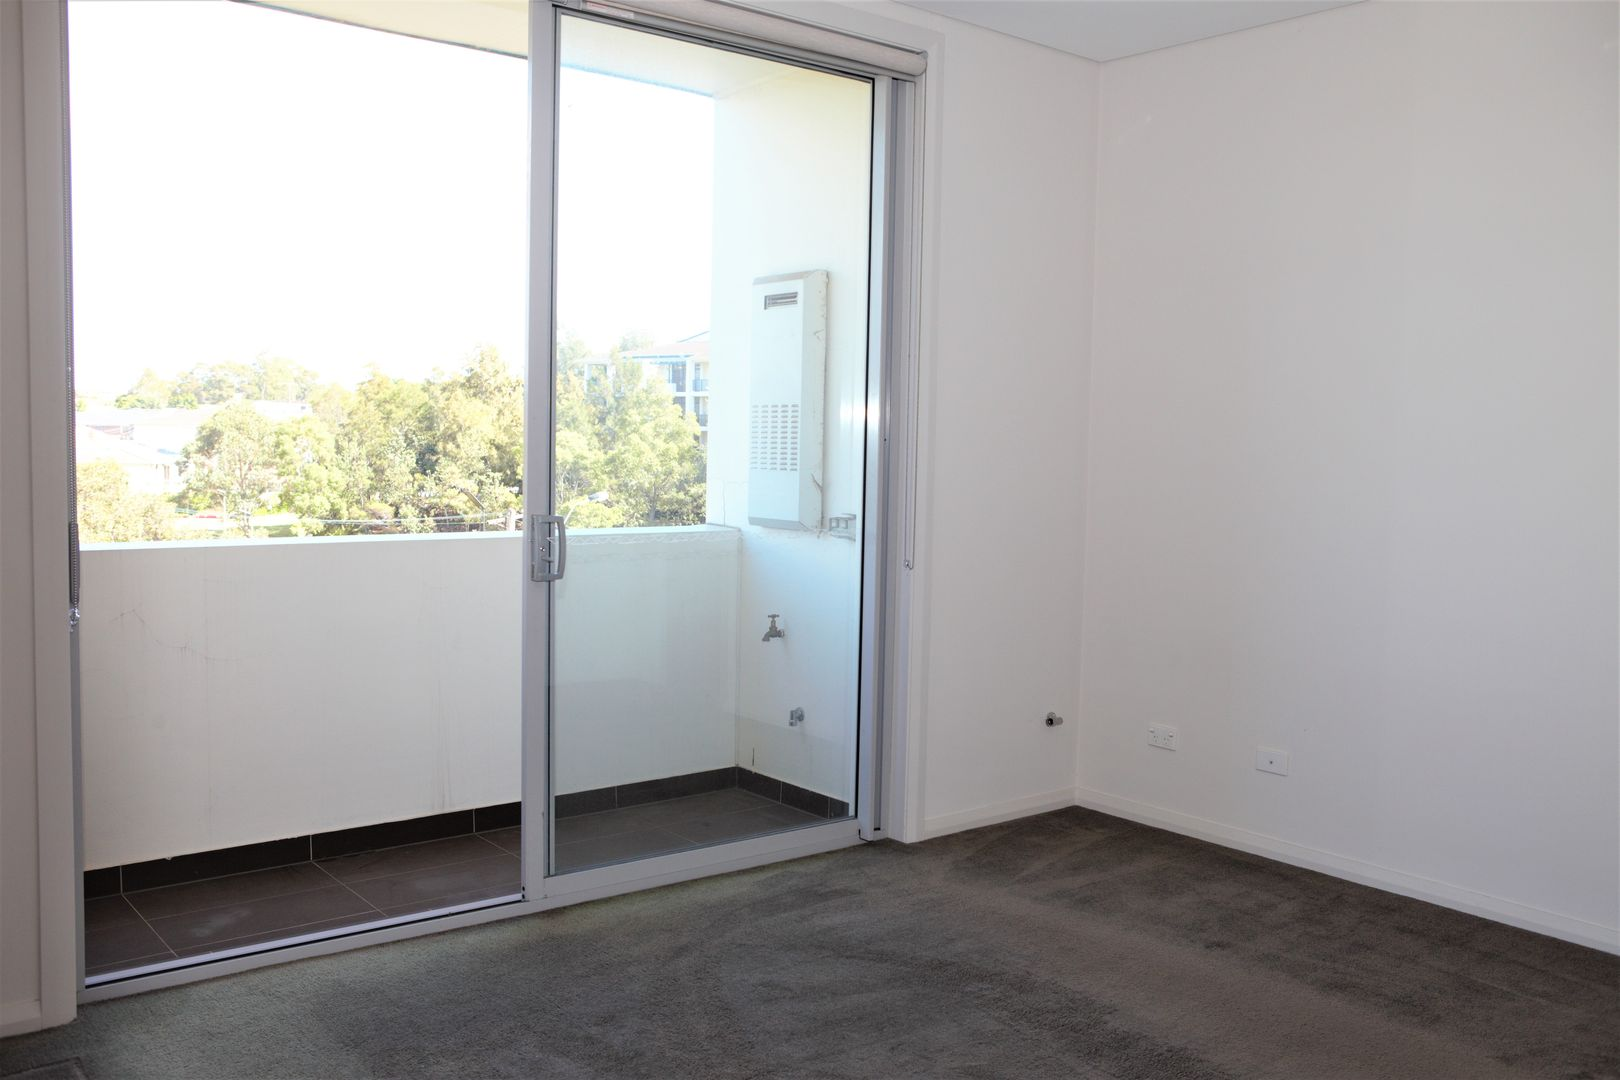 18/54 BLACKWALL POINT ROAD, Chiswick NSW 2046, Image 1